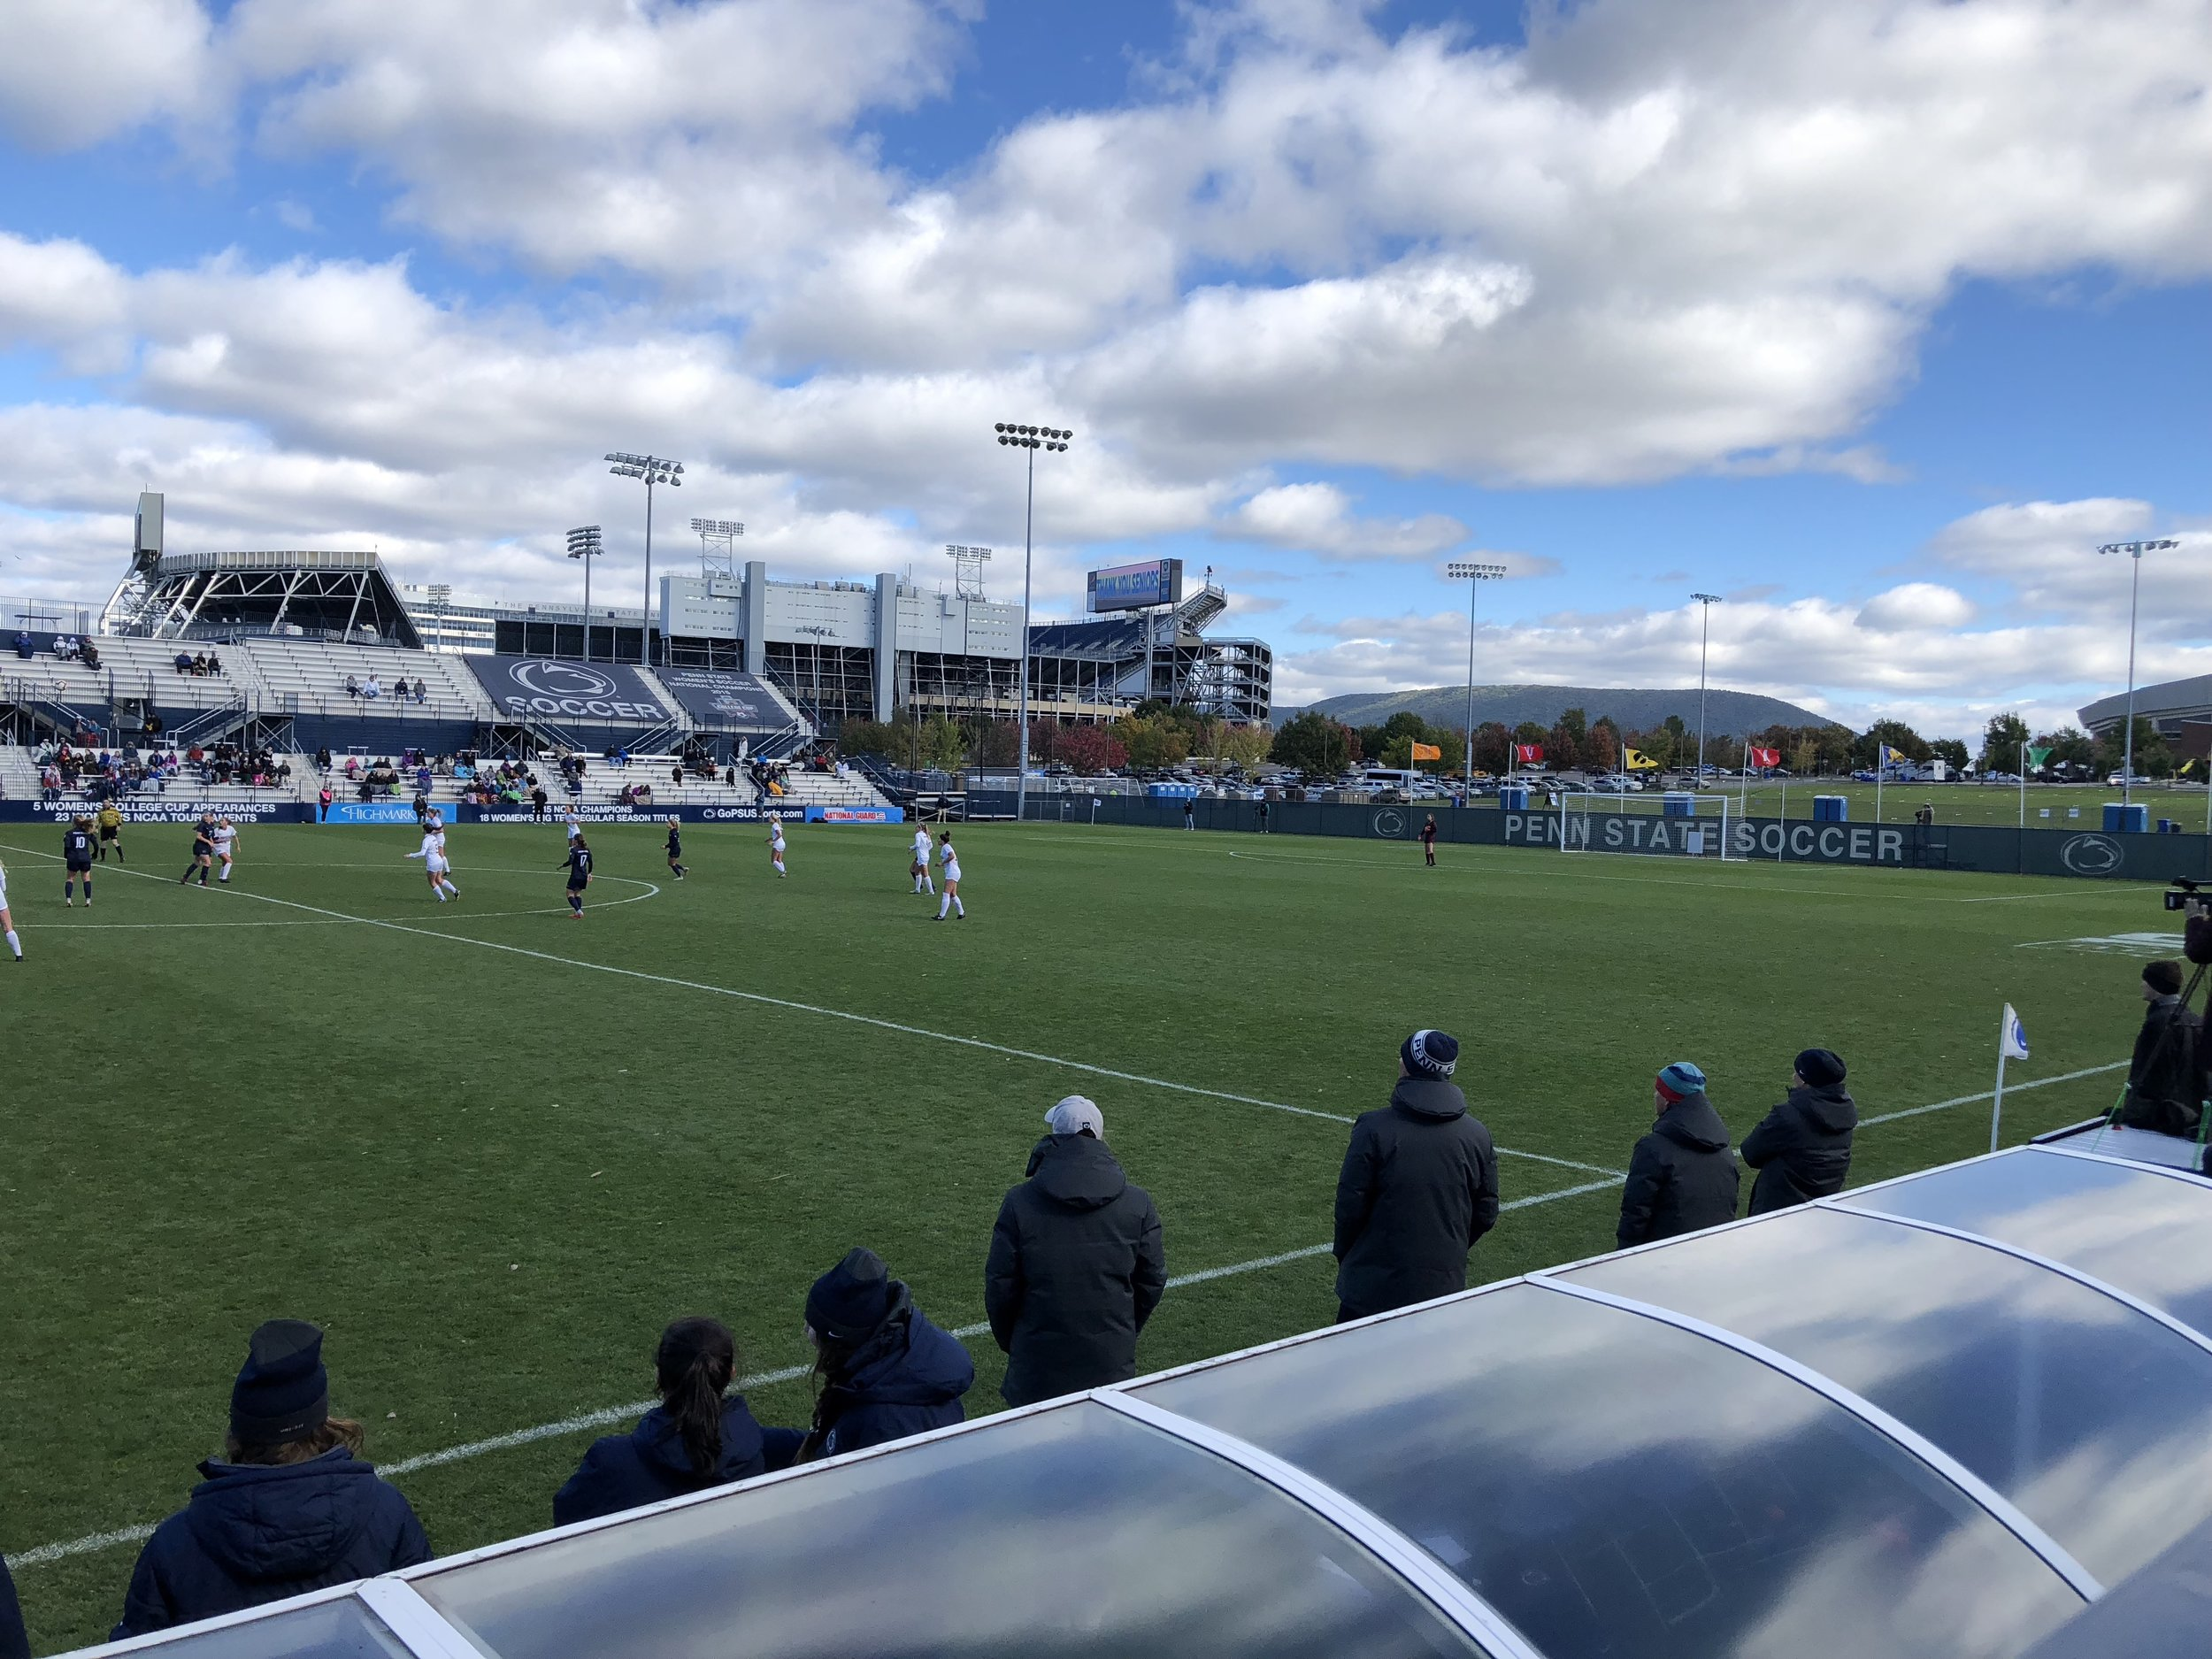 Image taken by Samantha McHenry. Penn State Soccer Field, October 2018.